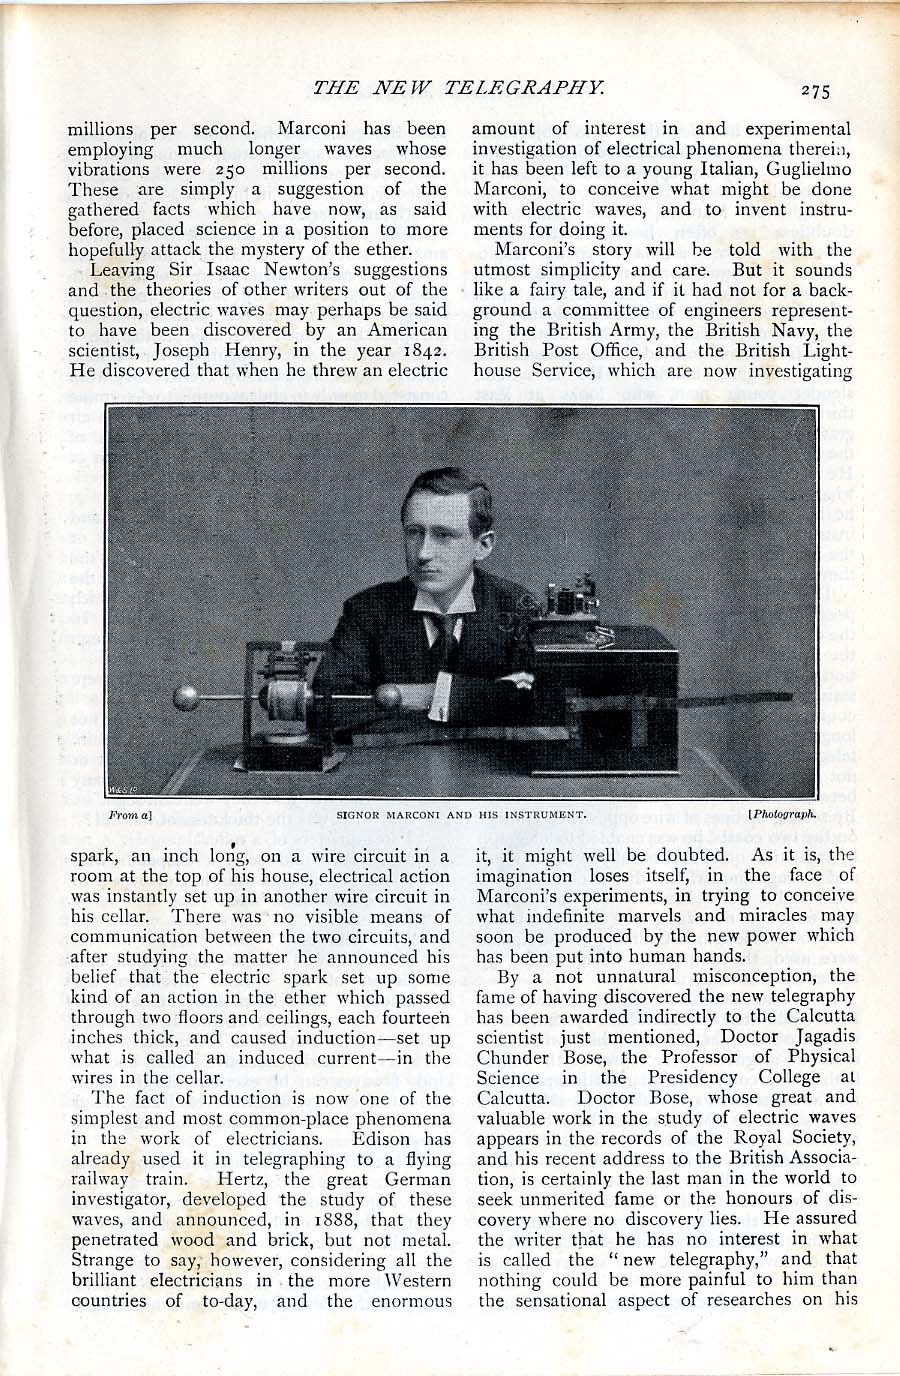 Illustrated Article from The Strand Magazine, 1897